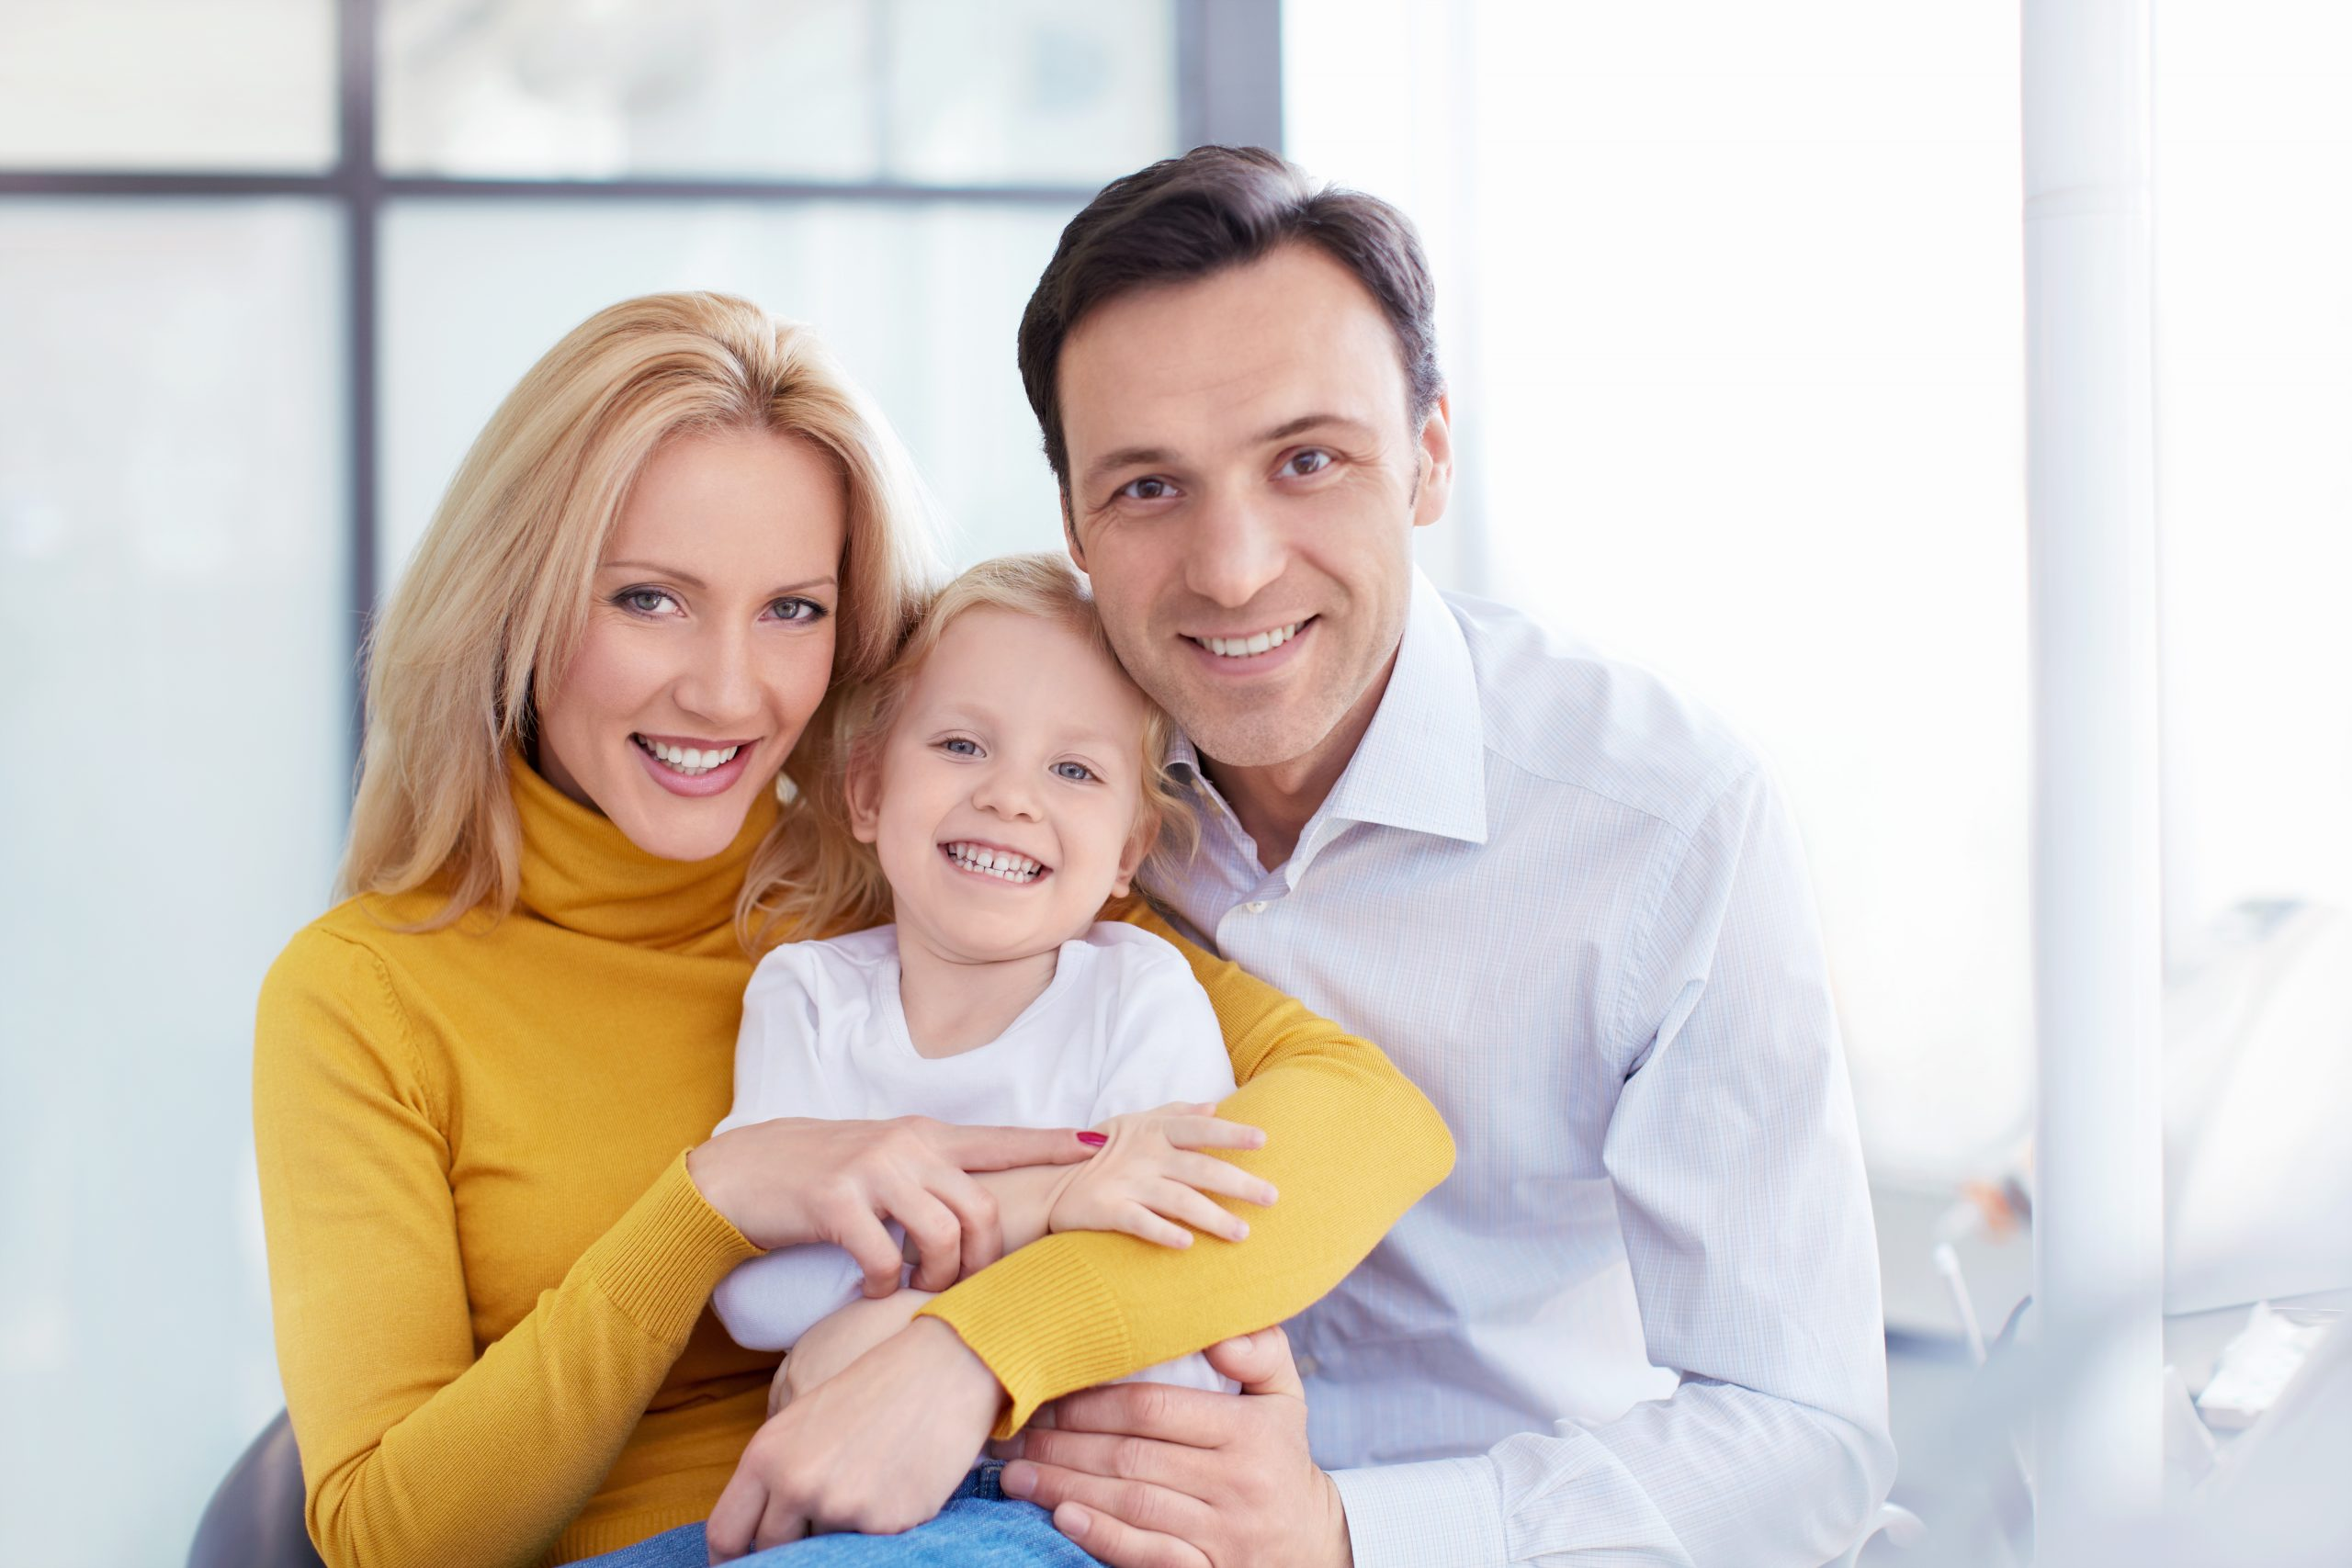 Happy dallas texas family after receiving holistic medical treatment